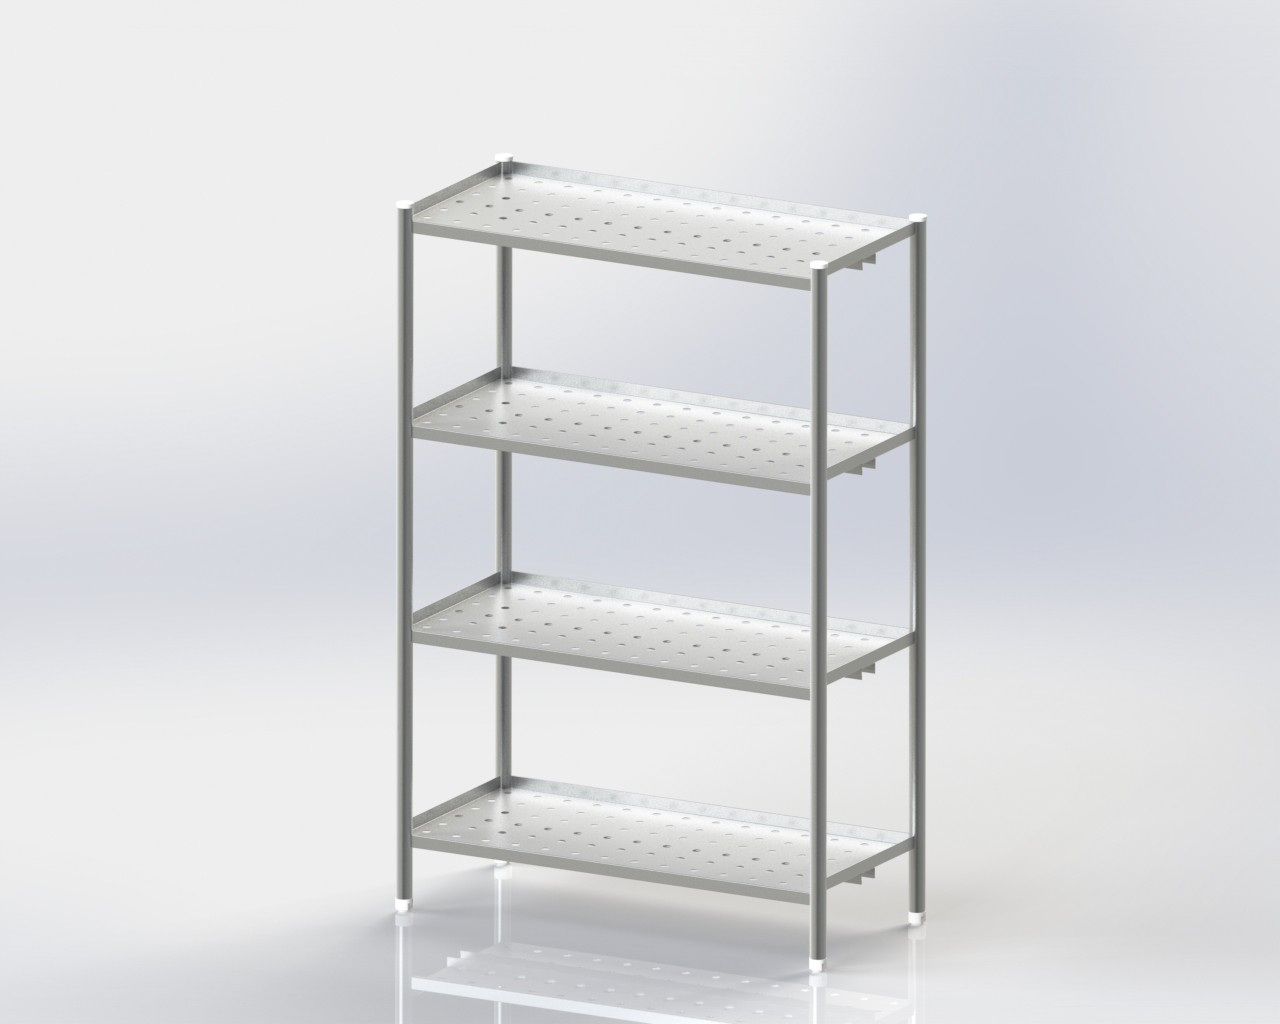 4 Storage Rack/Perforated